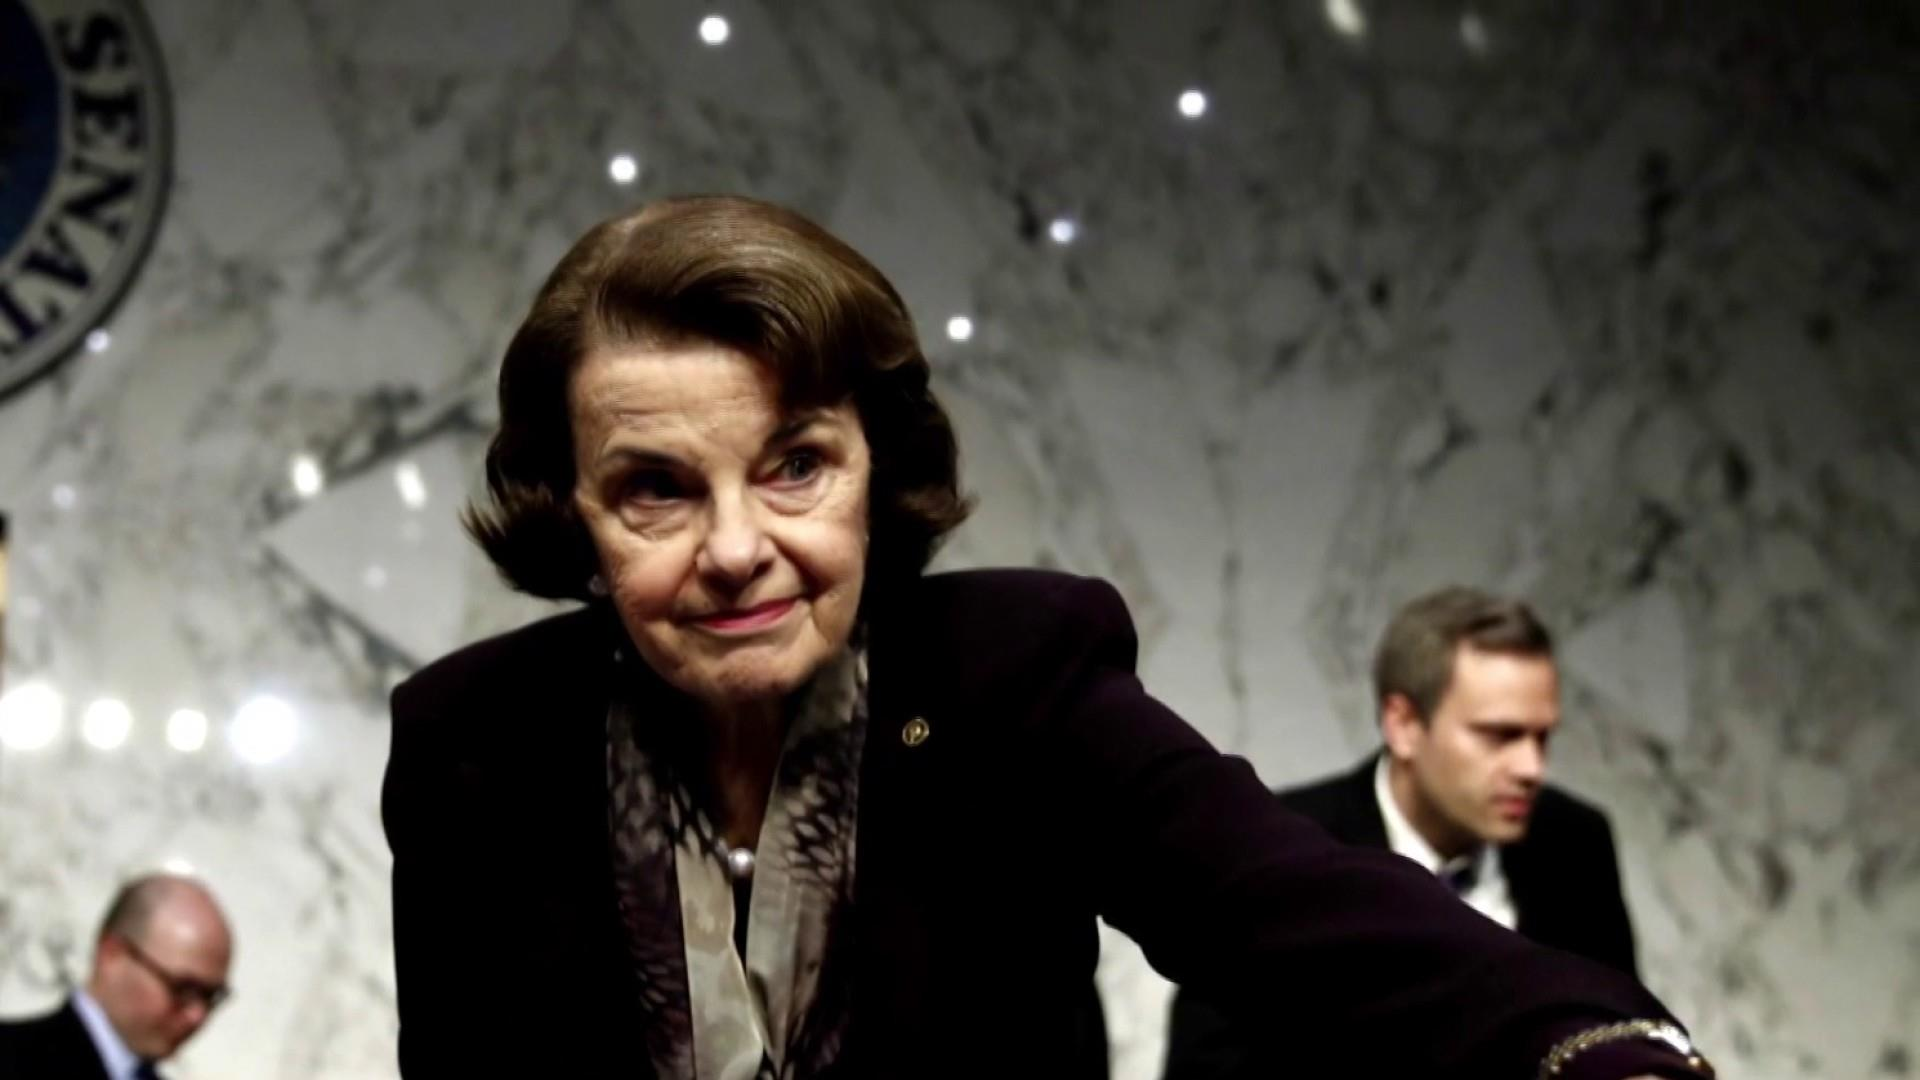 Senate veteran Dianne Feinstein faces Democratic challenger